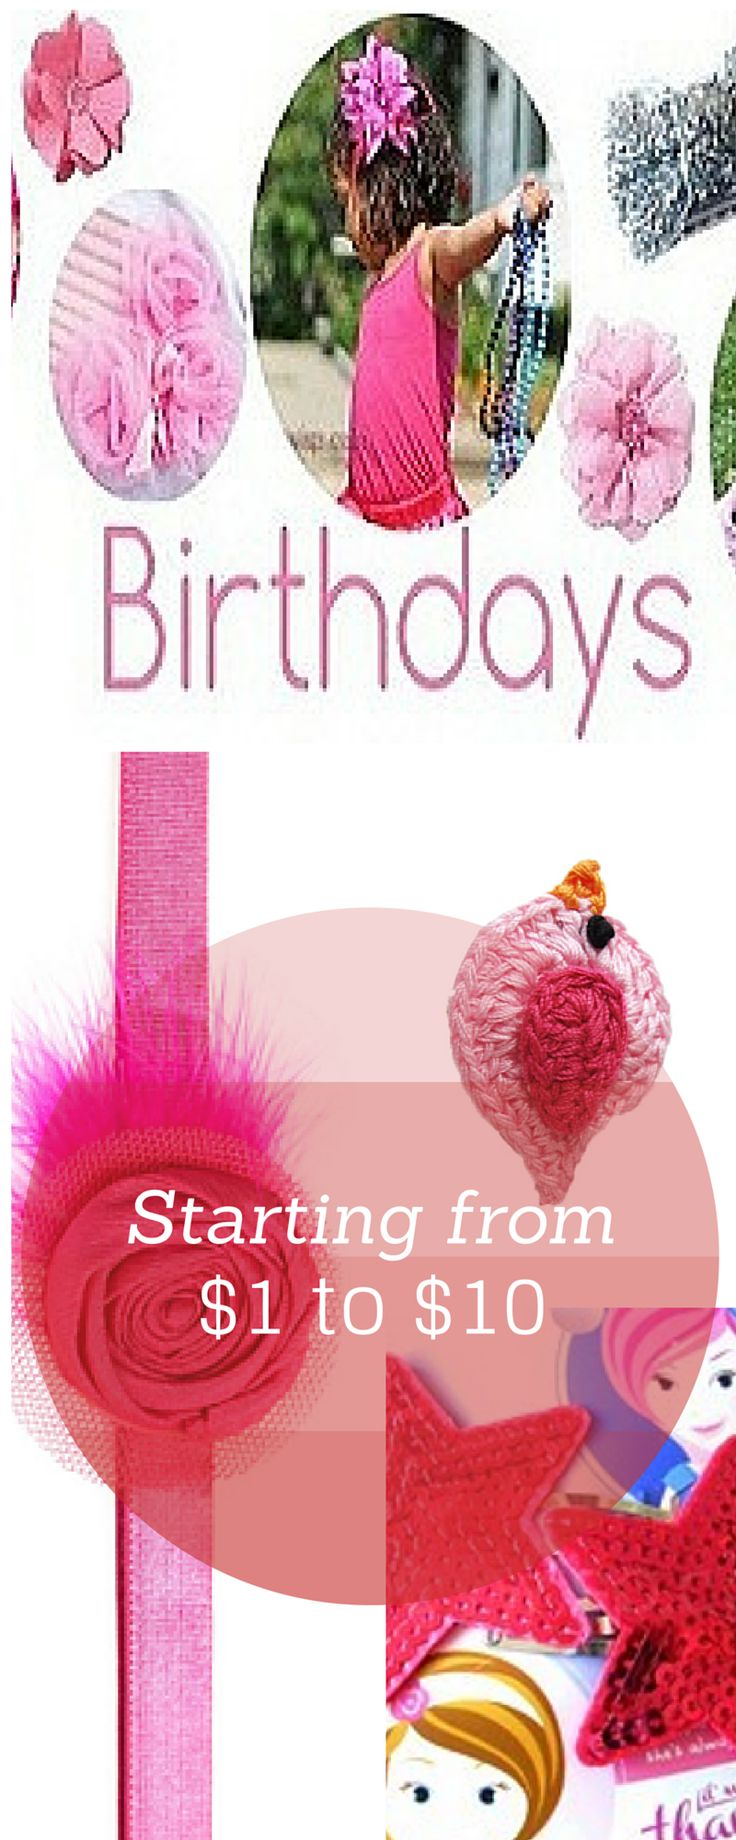 First Birthdays are always a special time! Getting to celebrate in style is the best gift for your little girl! Looking for a birthday gift for your baby girl or friends and family? This whole section has a selection of our favourite clips and accessories for birthday outfits, photoshoots and gifts! #babywisp #babybirthdaygifts #babygifts